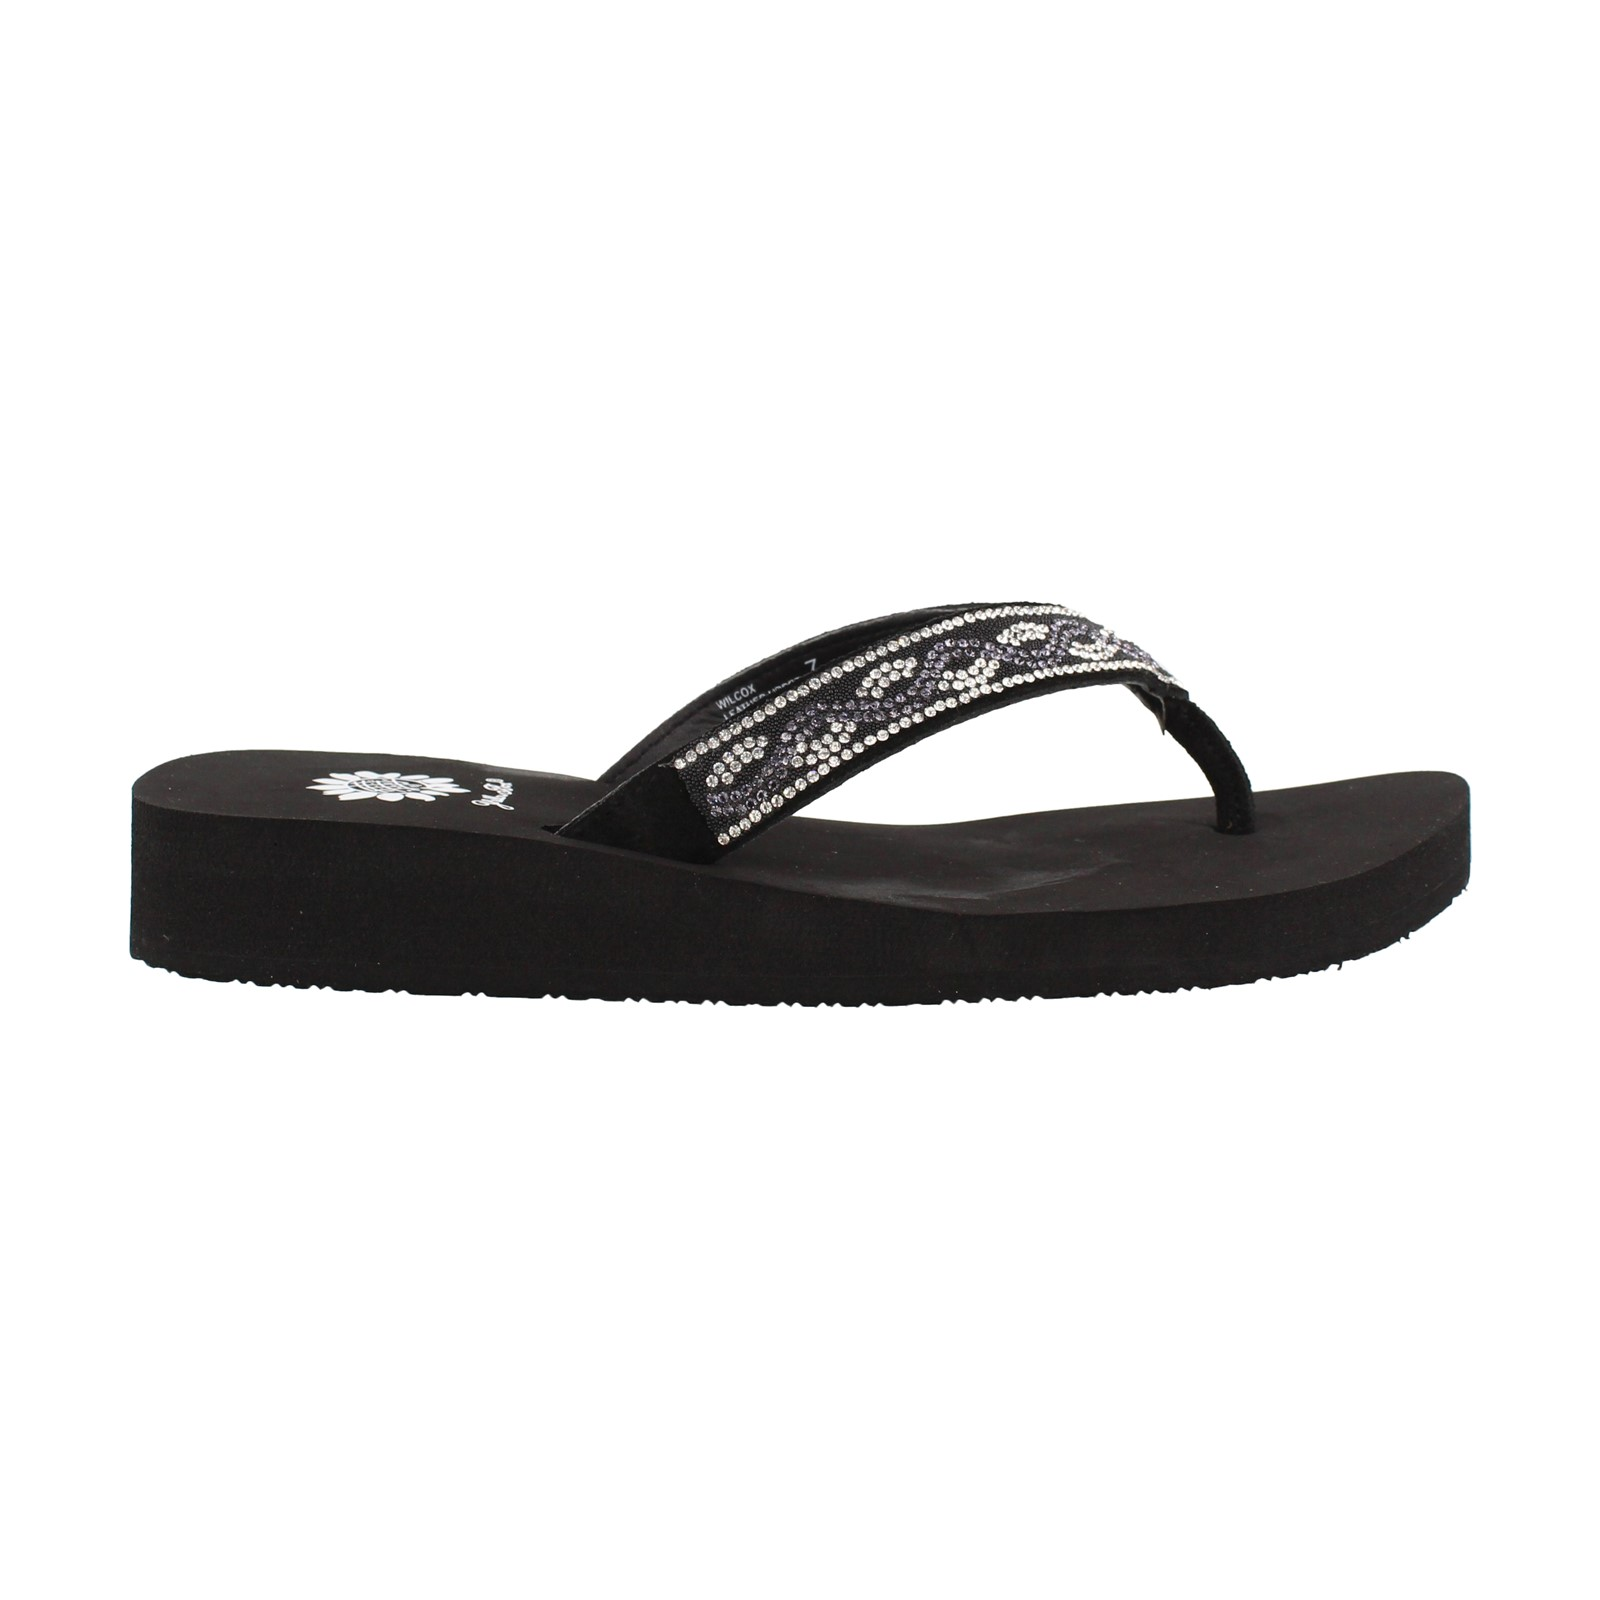 Women's Yellowbox, Wilcox Thong Sandals